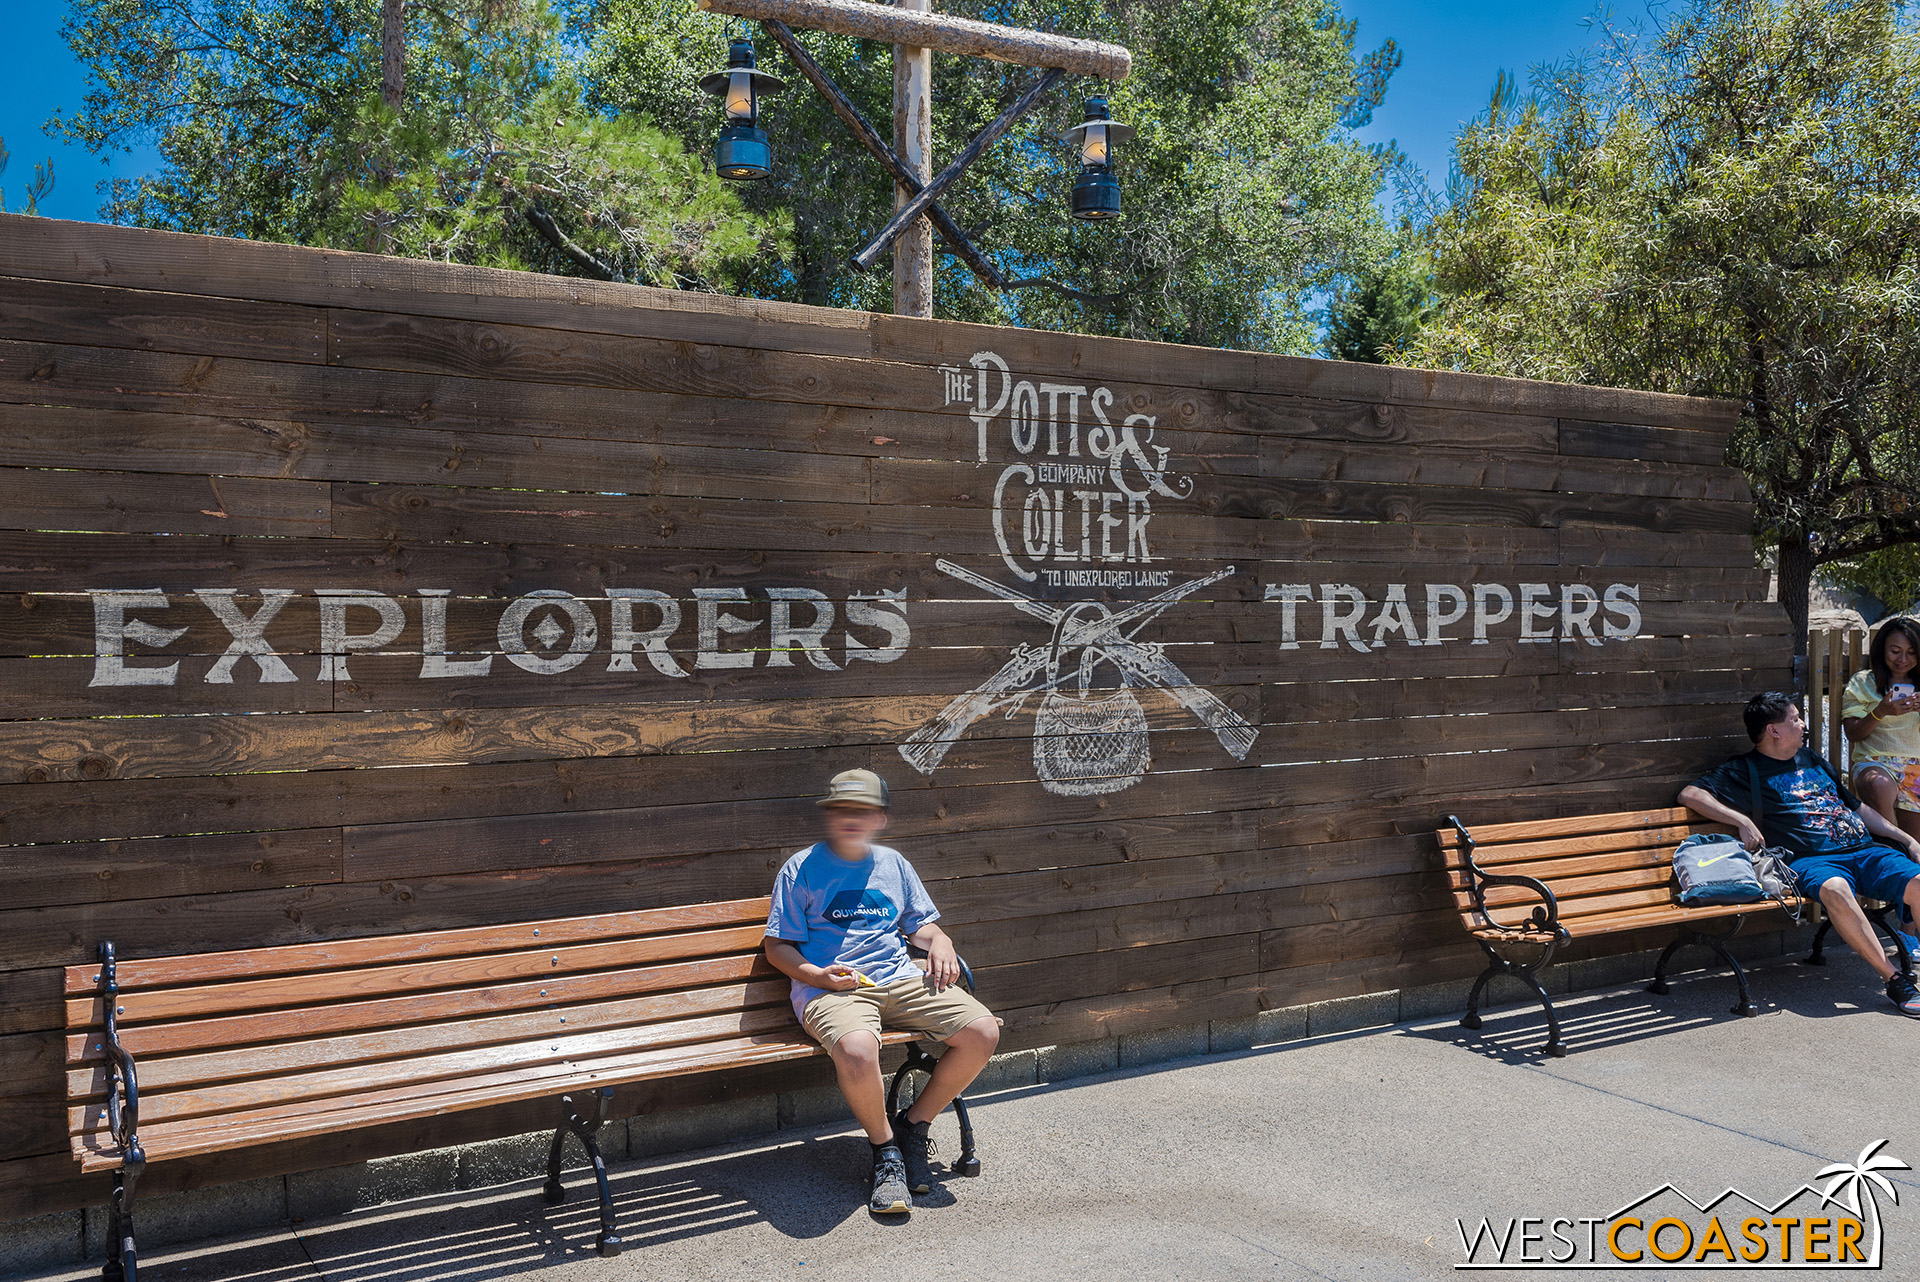 Potts & Colter lend their names to this sign over by Calico River Rapids.  Though no actual Ghost Town Alive! activities take place here, Potts & Colter are actual characters in this year's iteration of GTA!